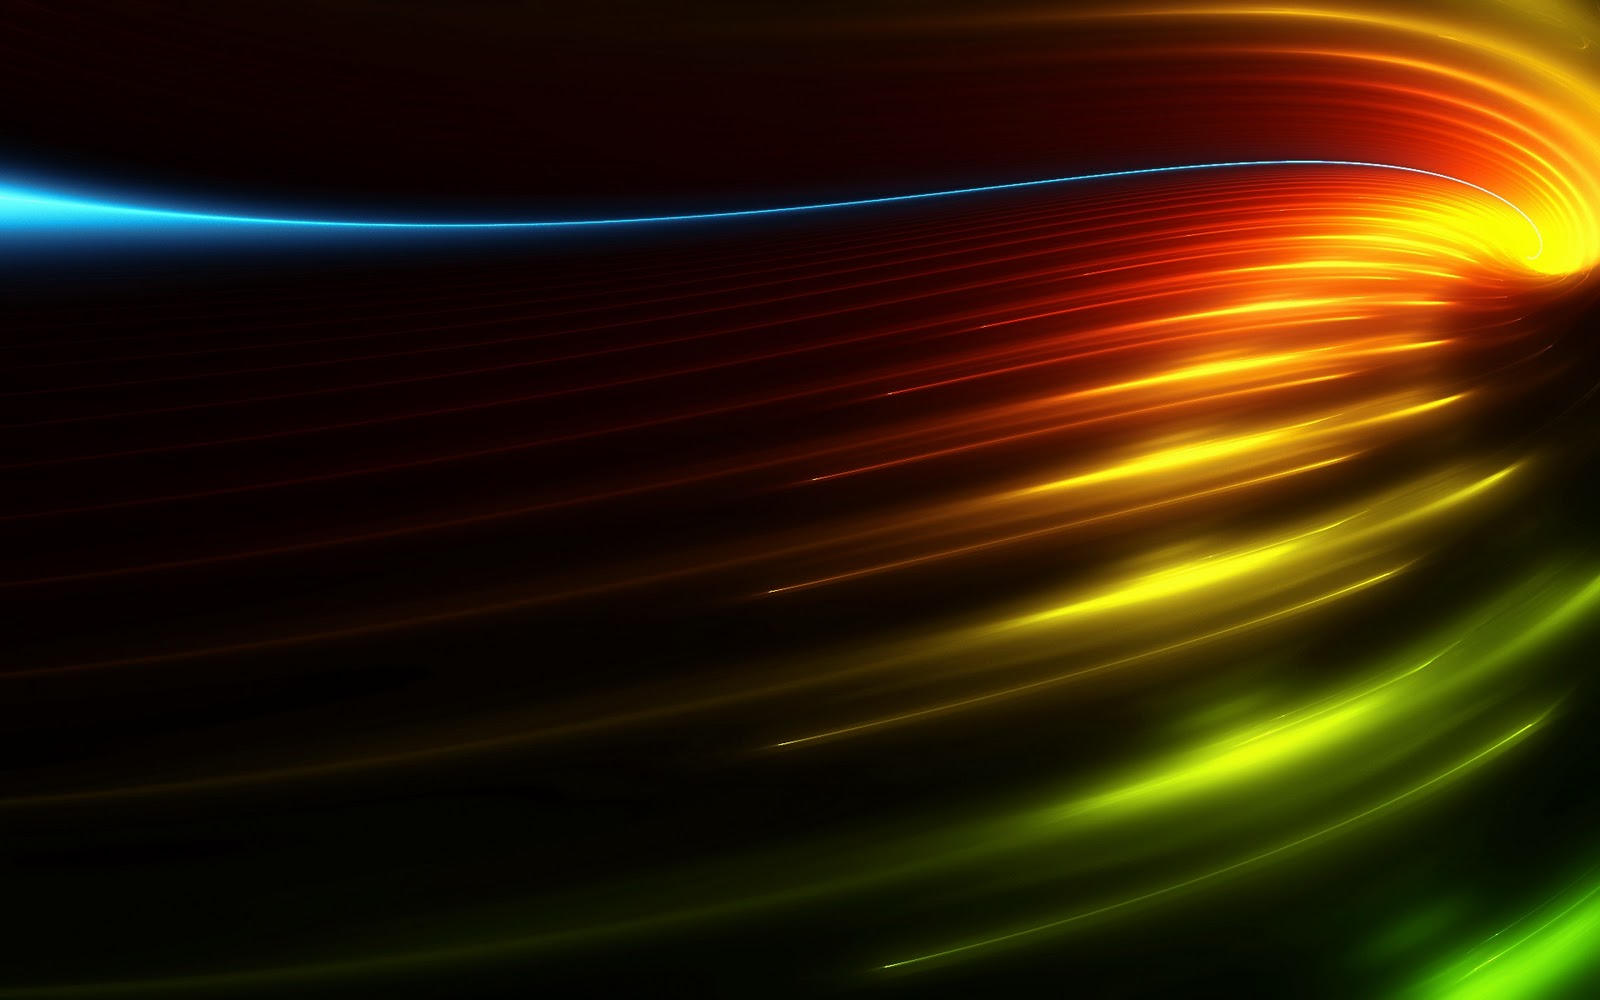 abstract colorful desktop wallpaper 1600x1000